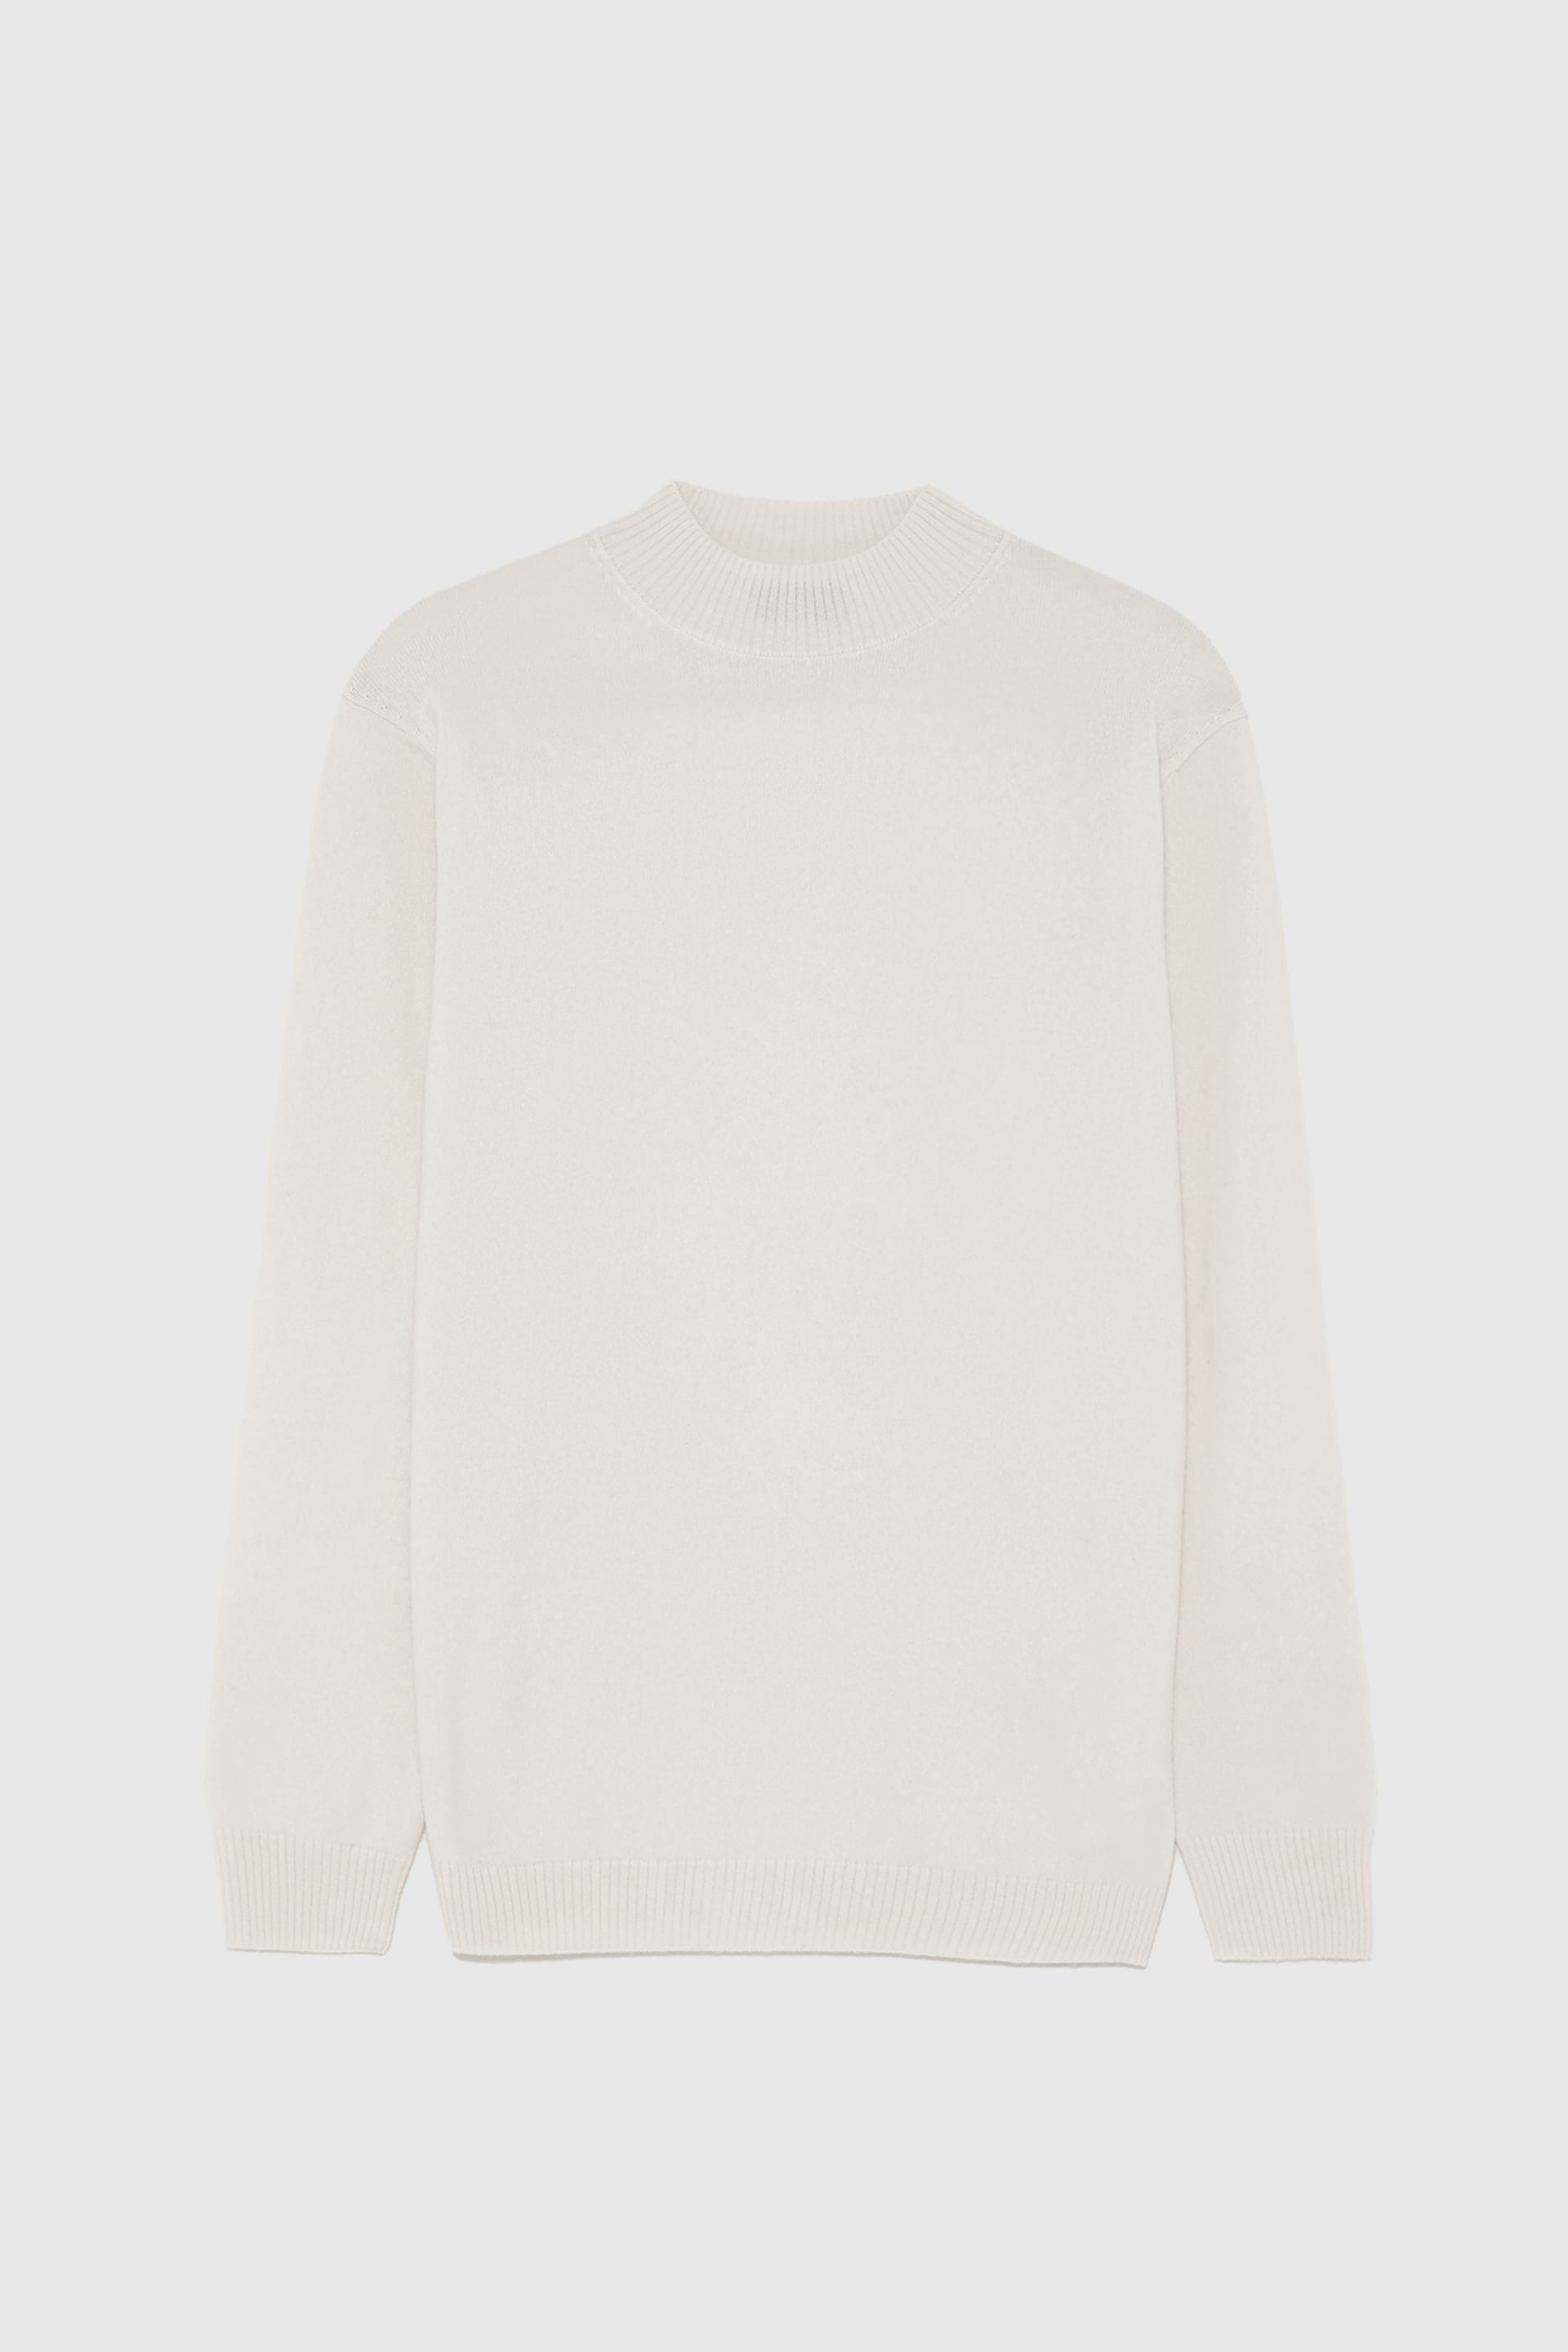 Zara Cream Cashmere Sweater